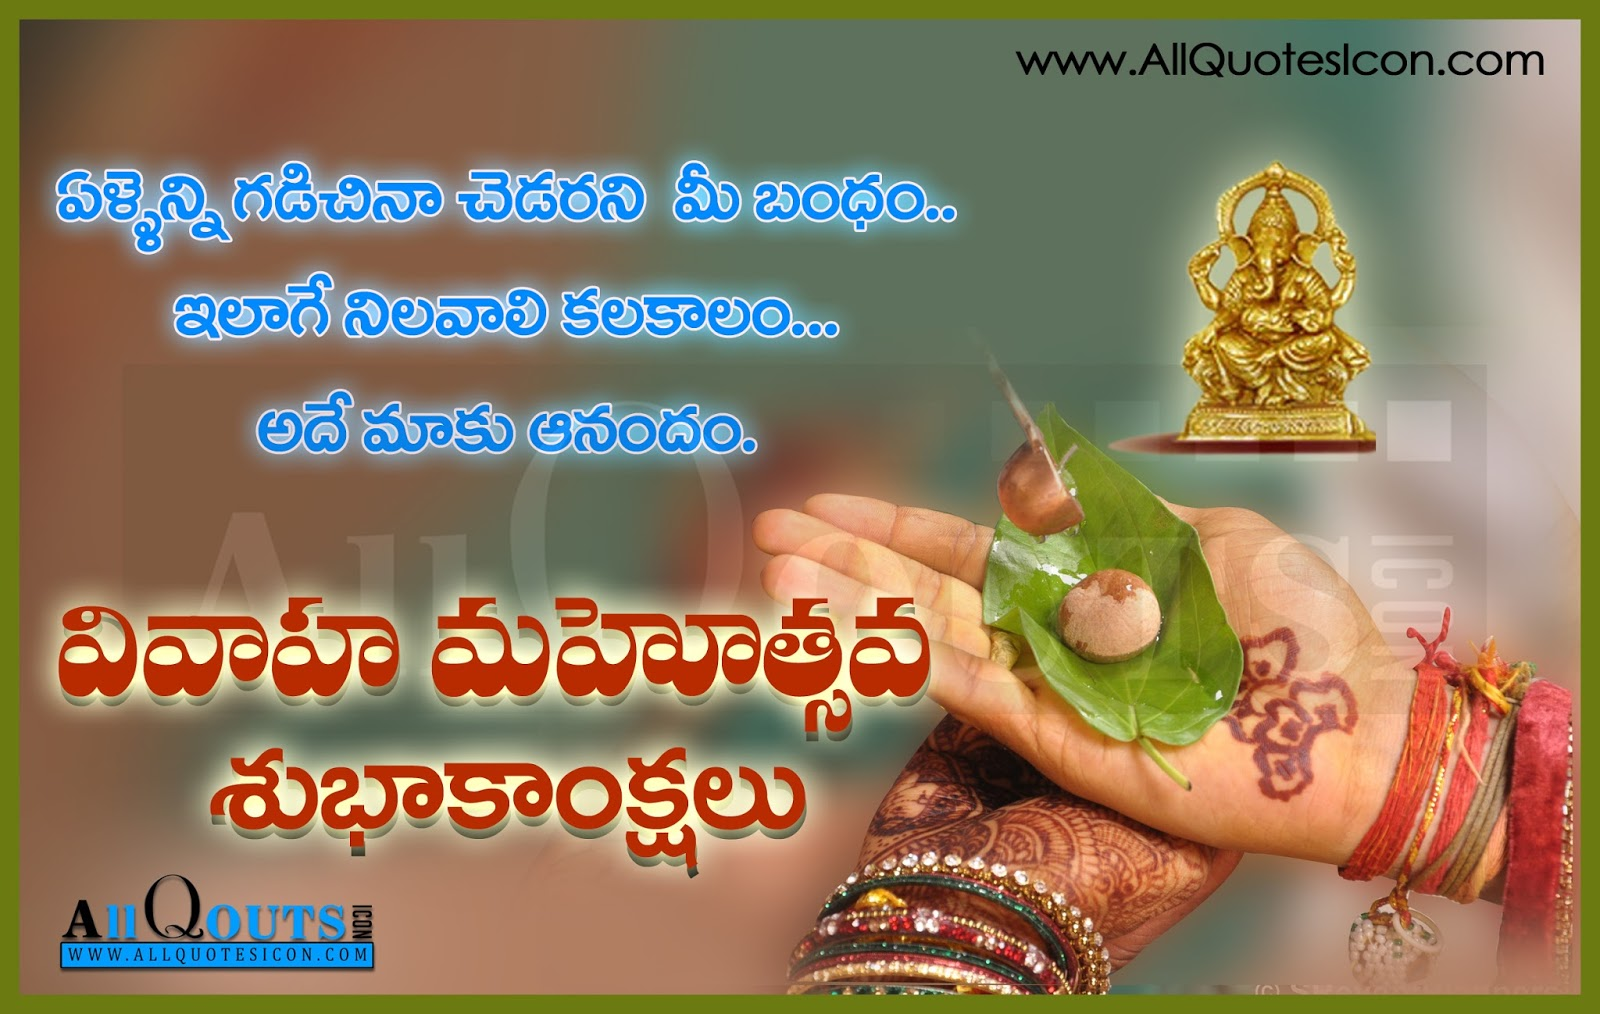 Hindu Wedding Images And Quotes In Telugu Hd Wallpapers Best